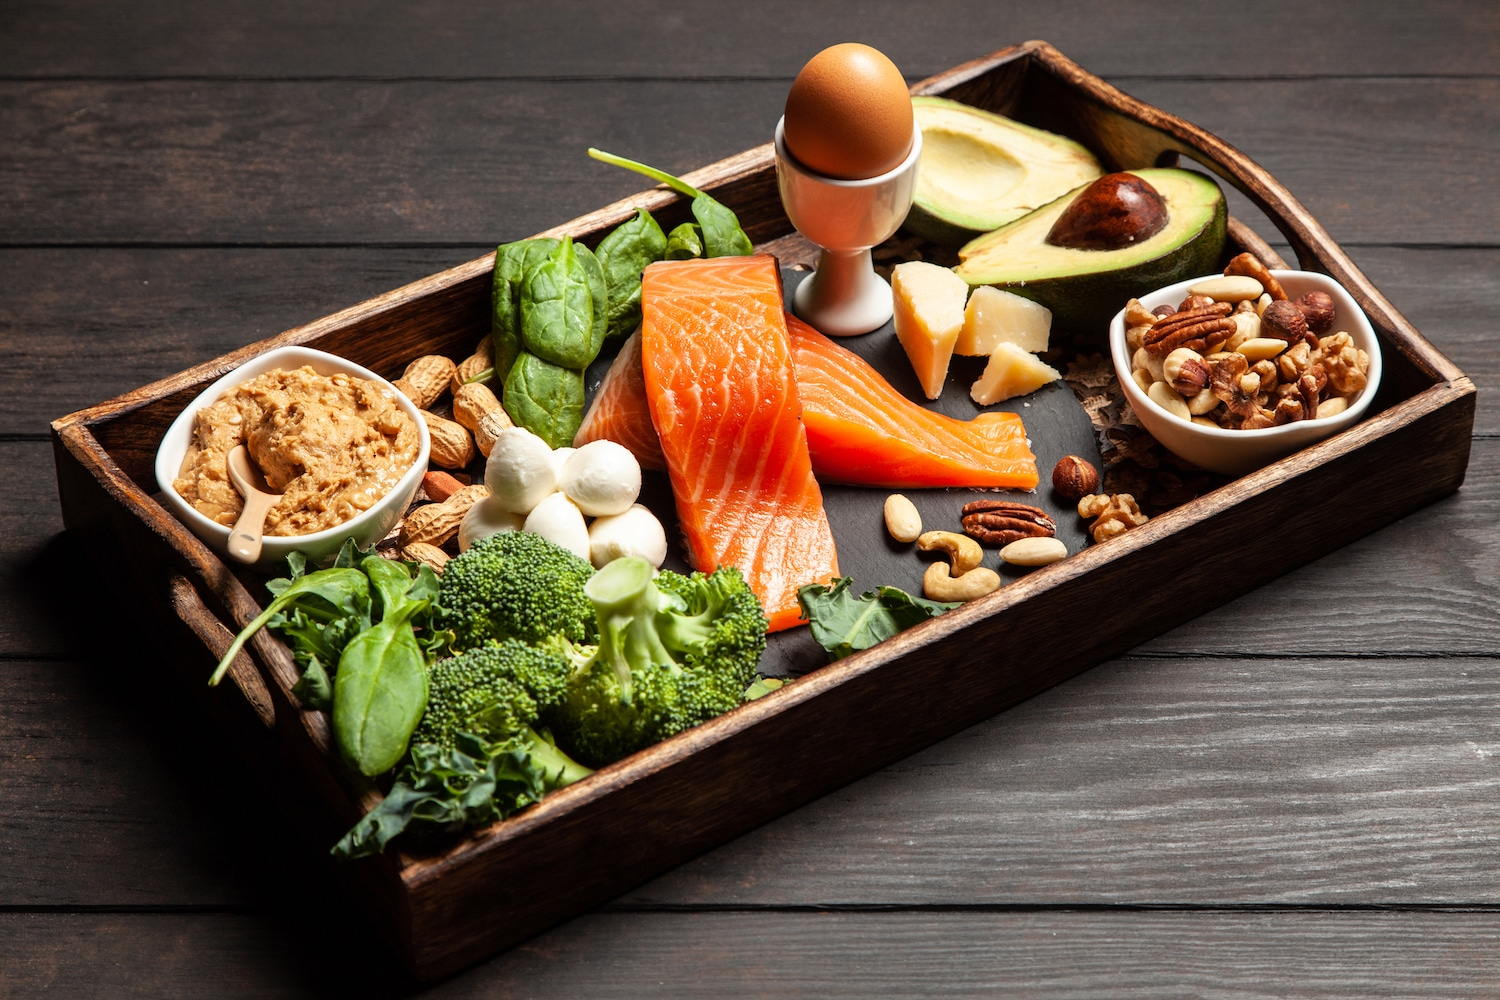 Healthy Eating To Slim Down - One Way To Accomplish Approach